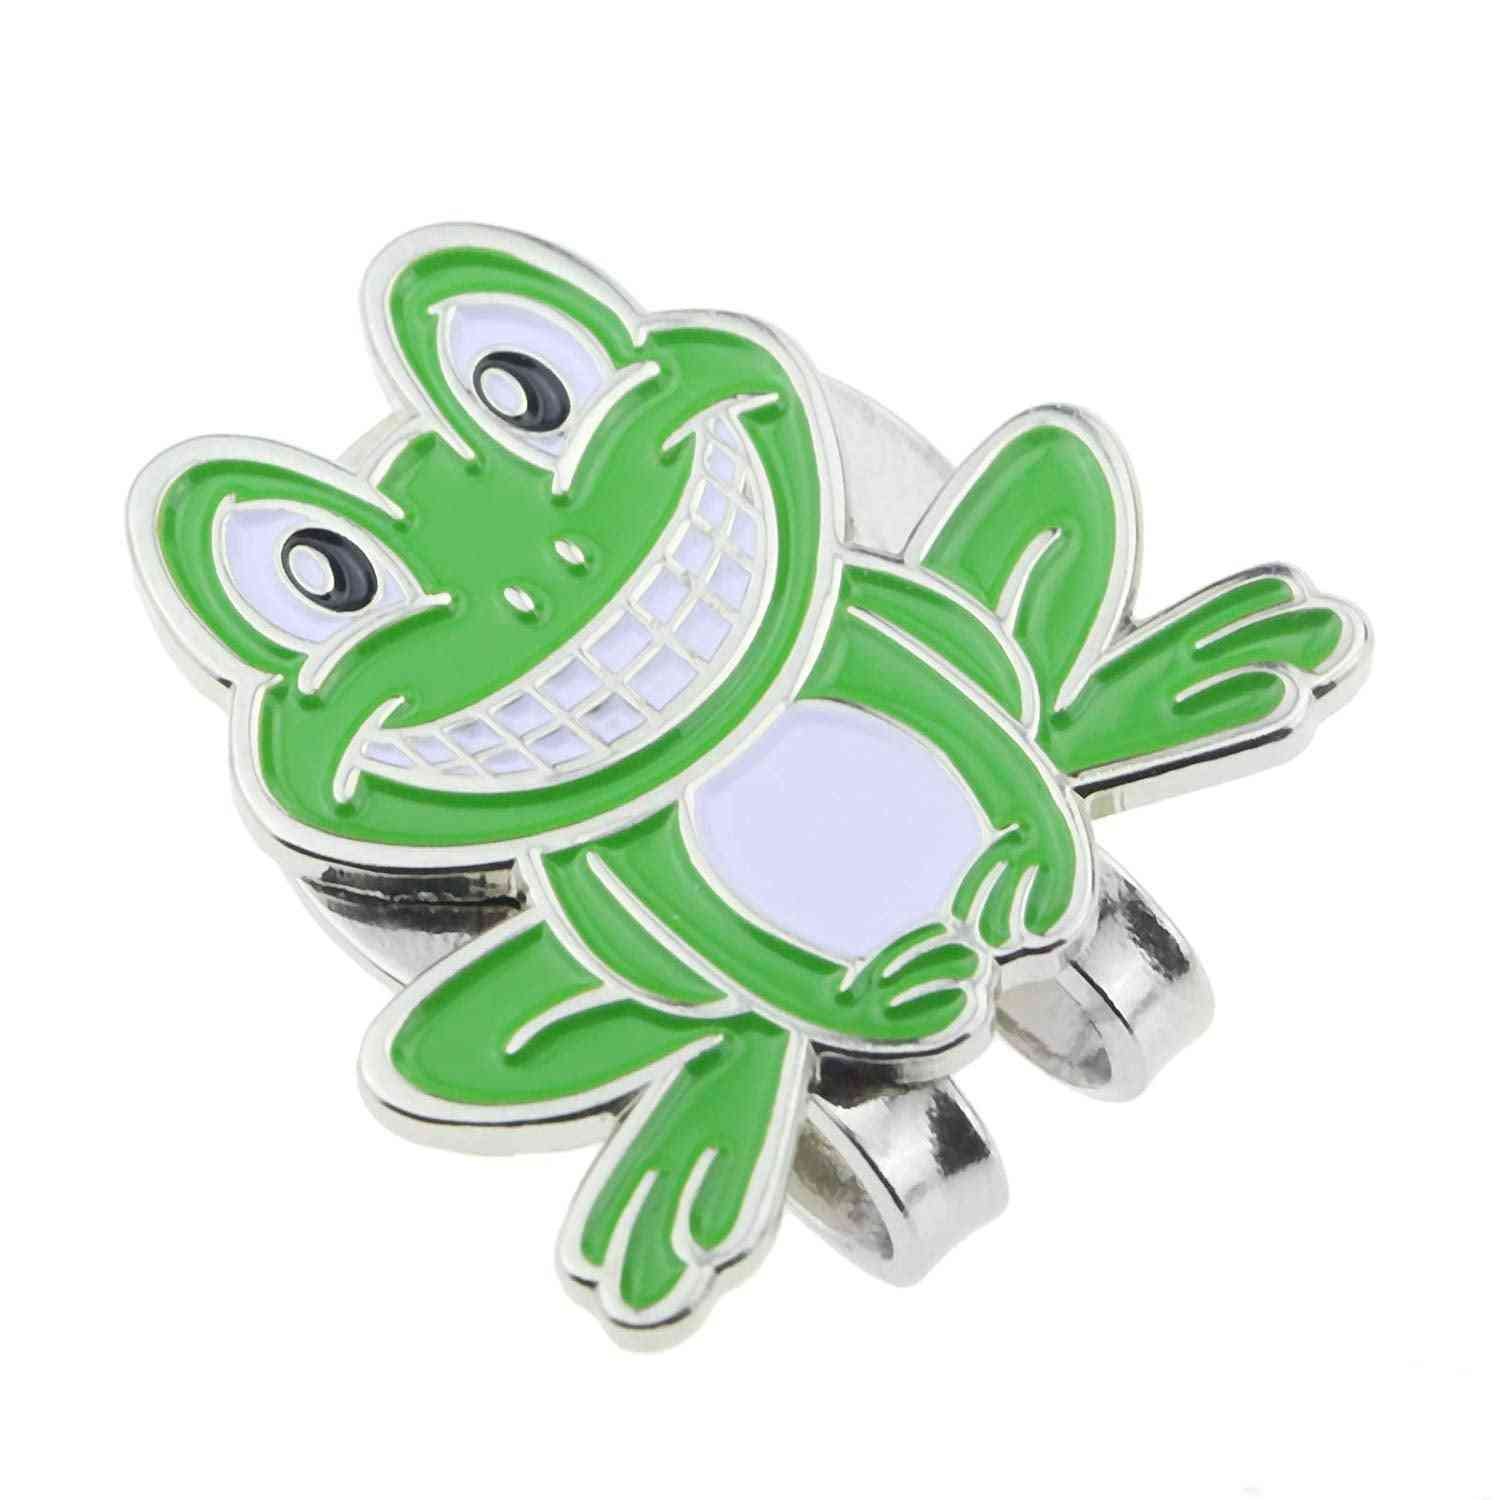 Golf Ball Marker  Smiling Frog Green Mark With Magnetic Cap